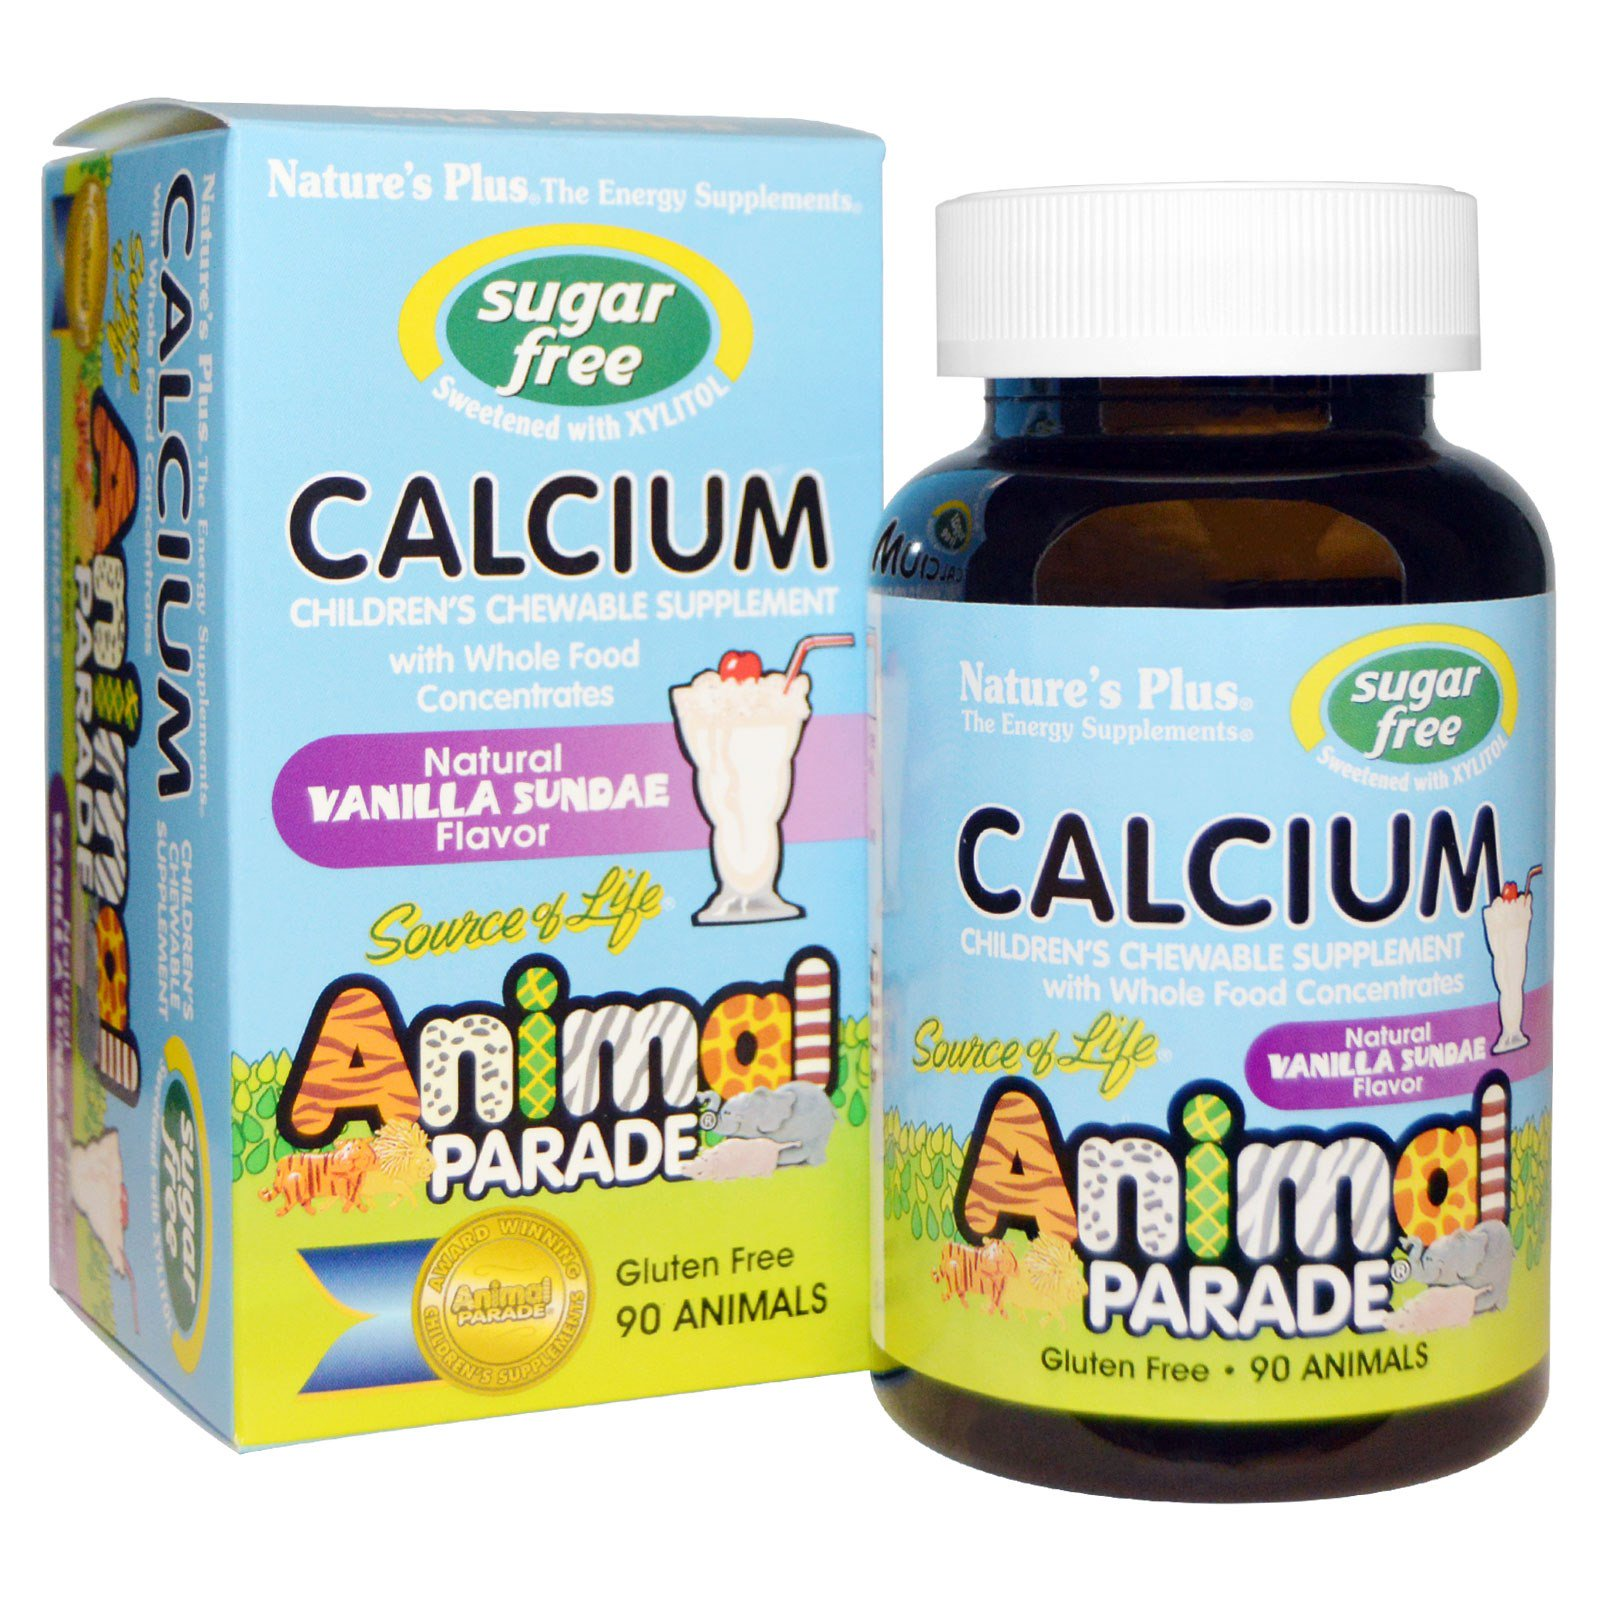 Calcium, Sugar Free, Natural Vanilla Sundae Flavor (90 Animals) Nature apos s Plus